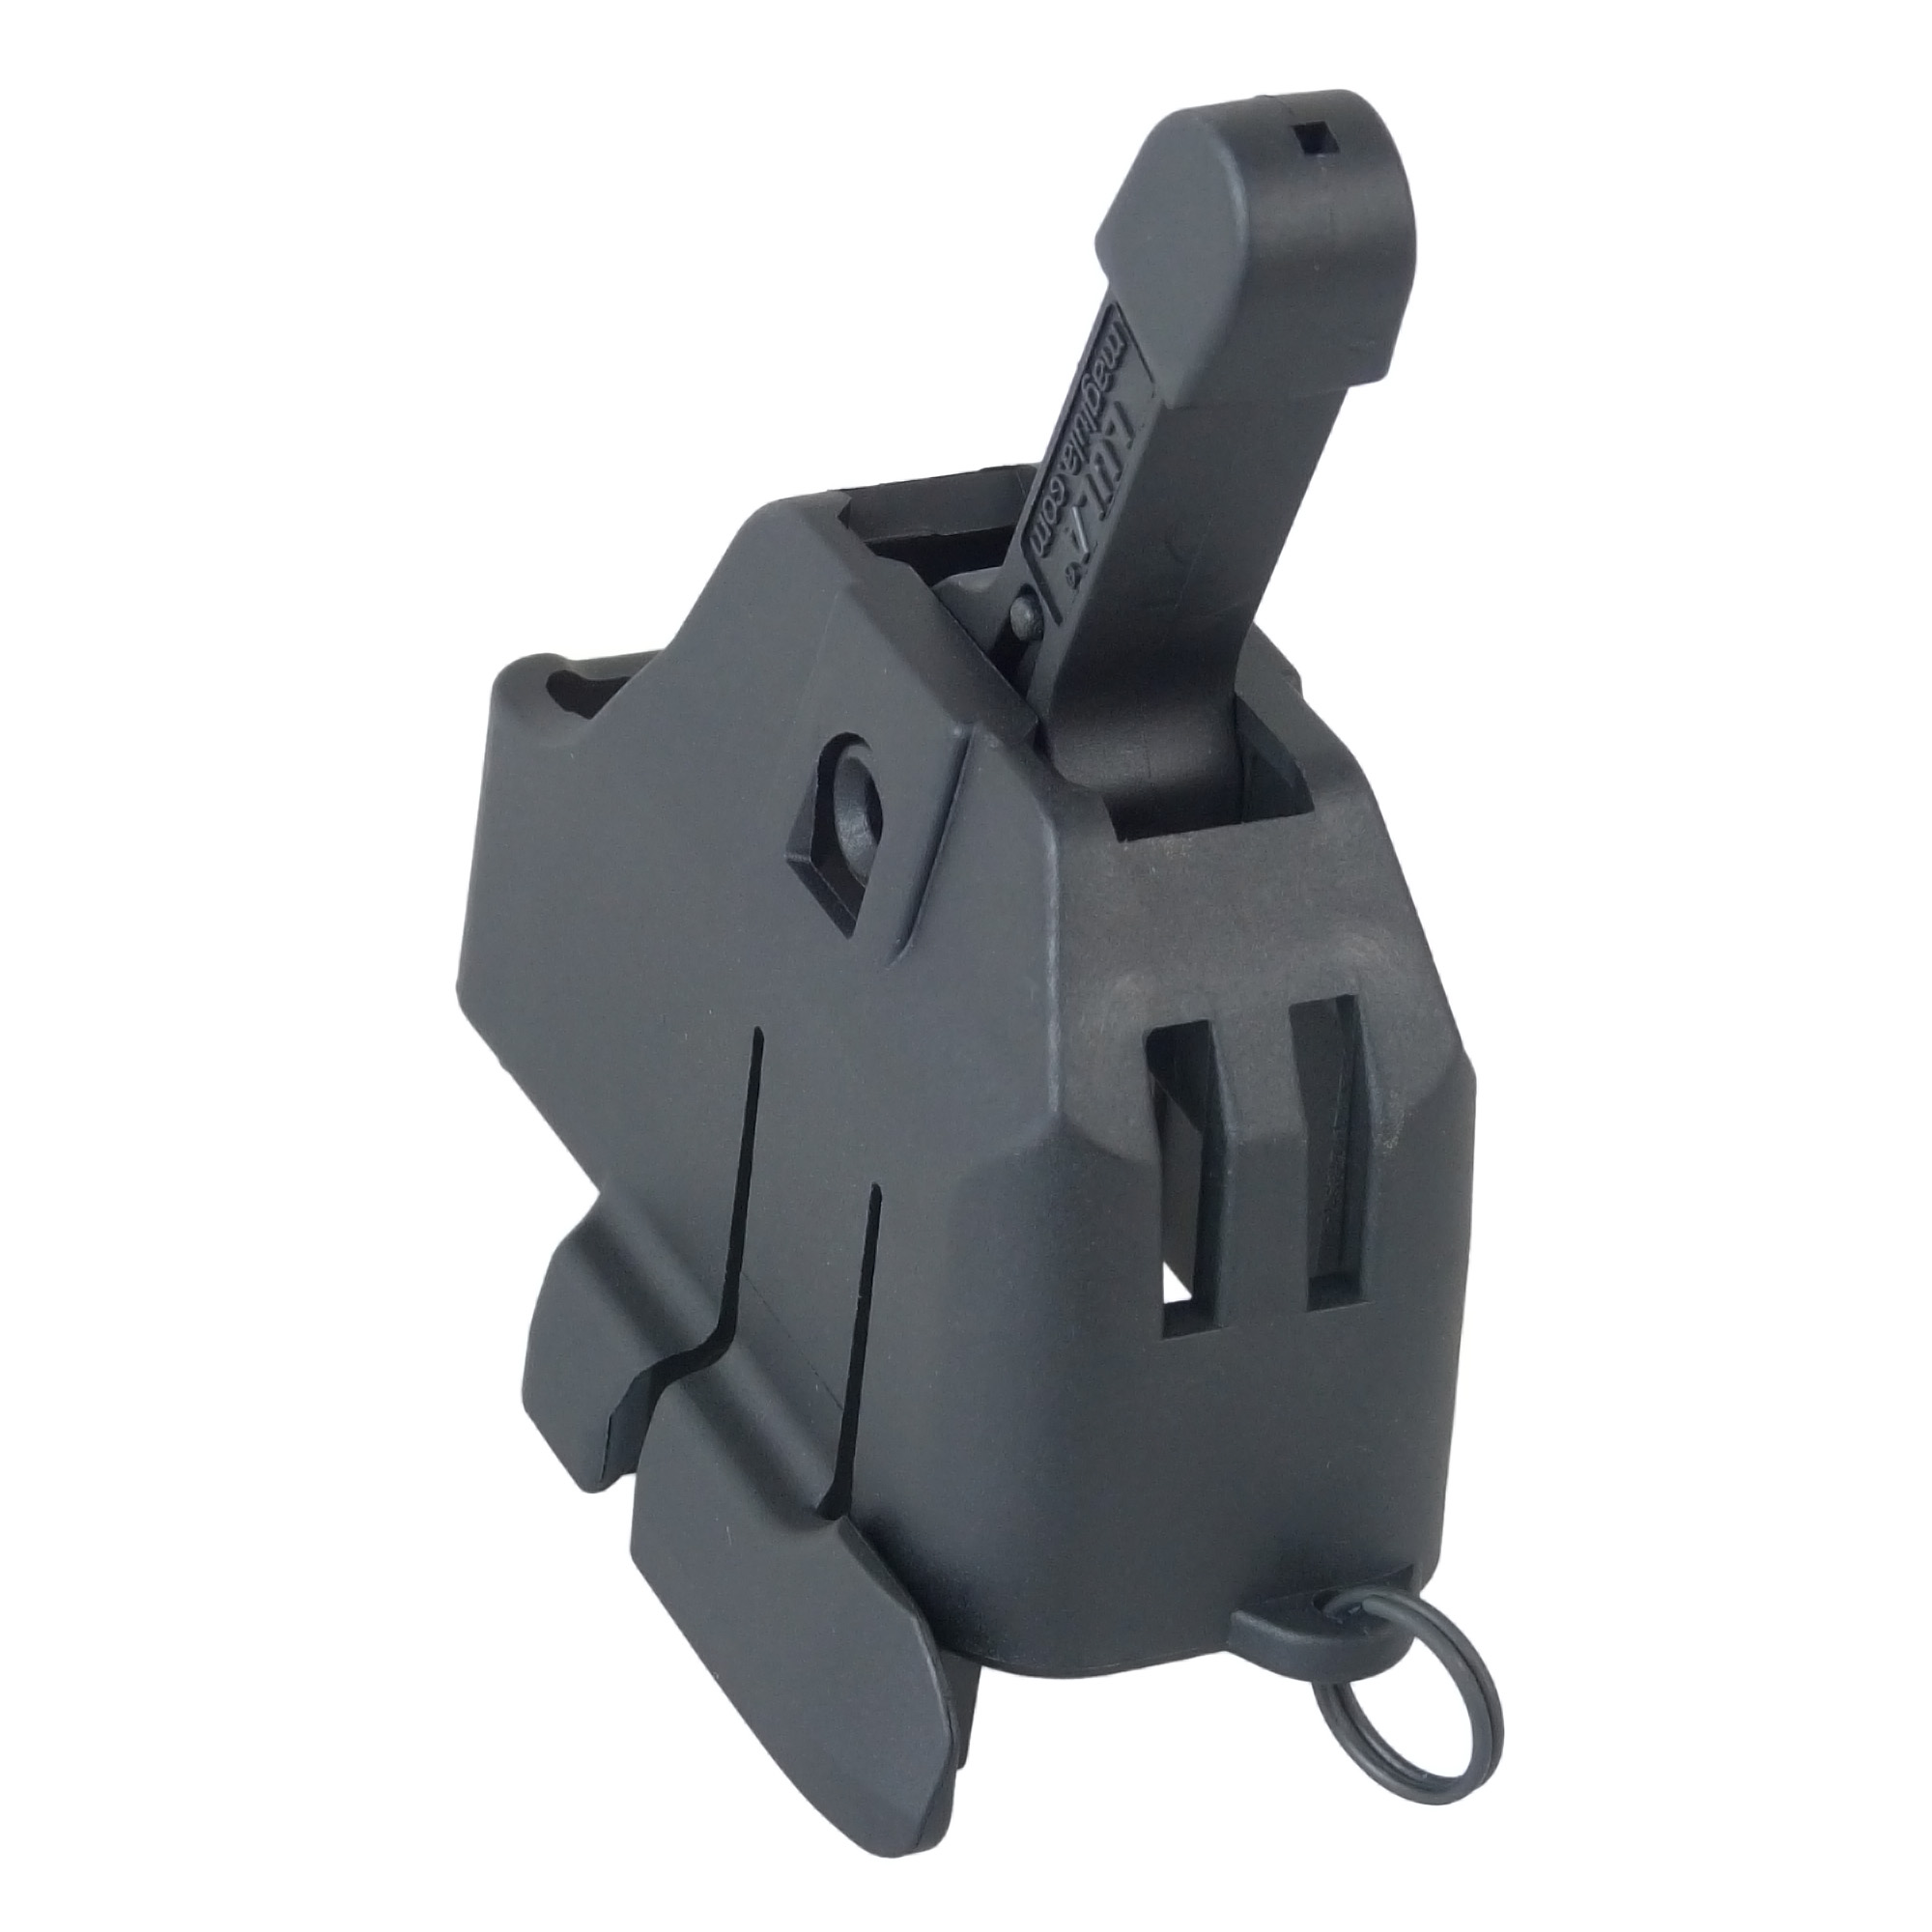 Maglula ltd , Magazine Loader/Unloader, Generation 2, Lula, 223  Rem/556NATO, Fits AR-15, Color